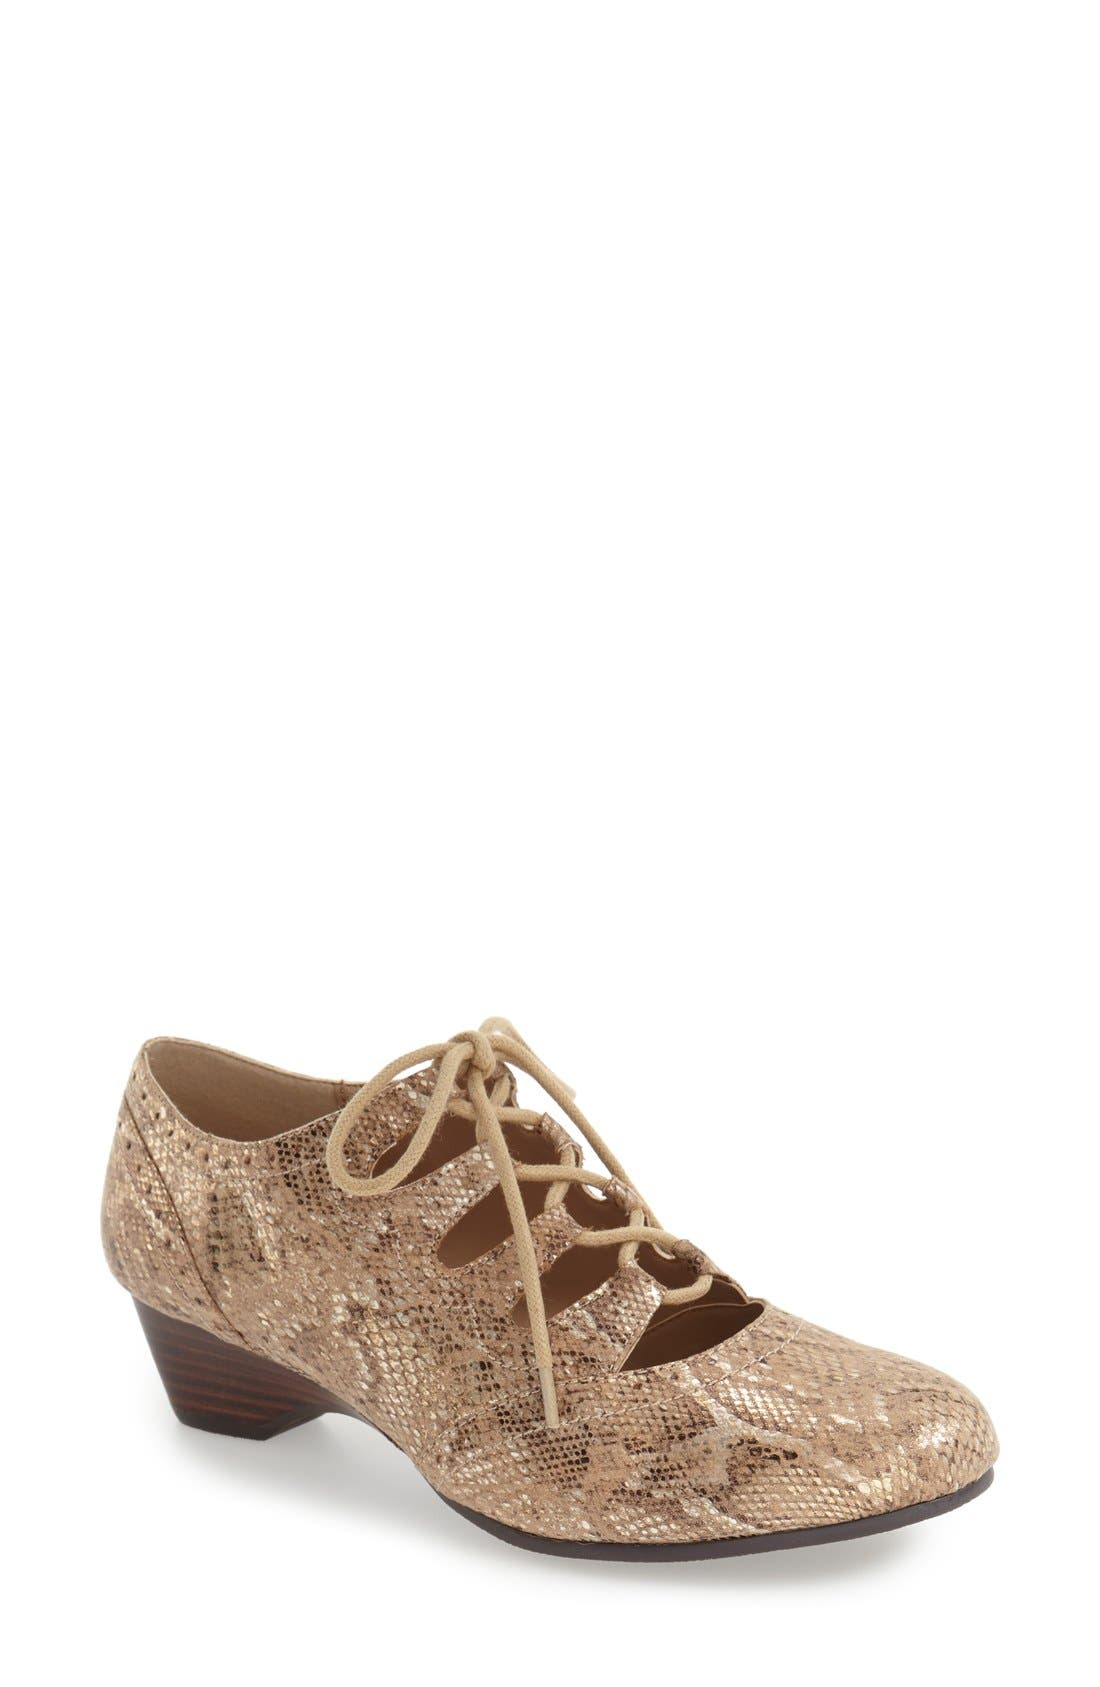 Posie Ghillie Oxford,                             Main thumbnail 1, color,                             CHAMPAGNE METALLIC SNAKE